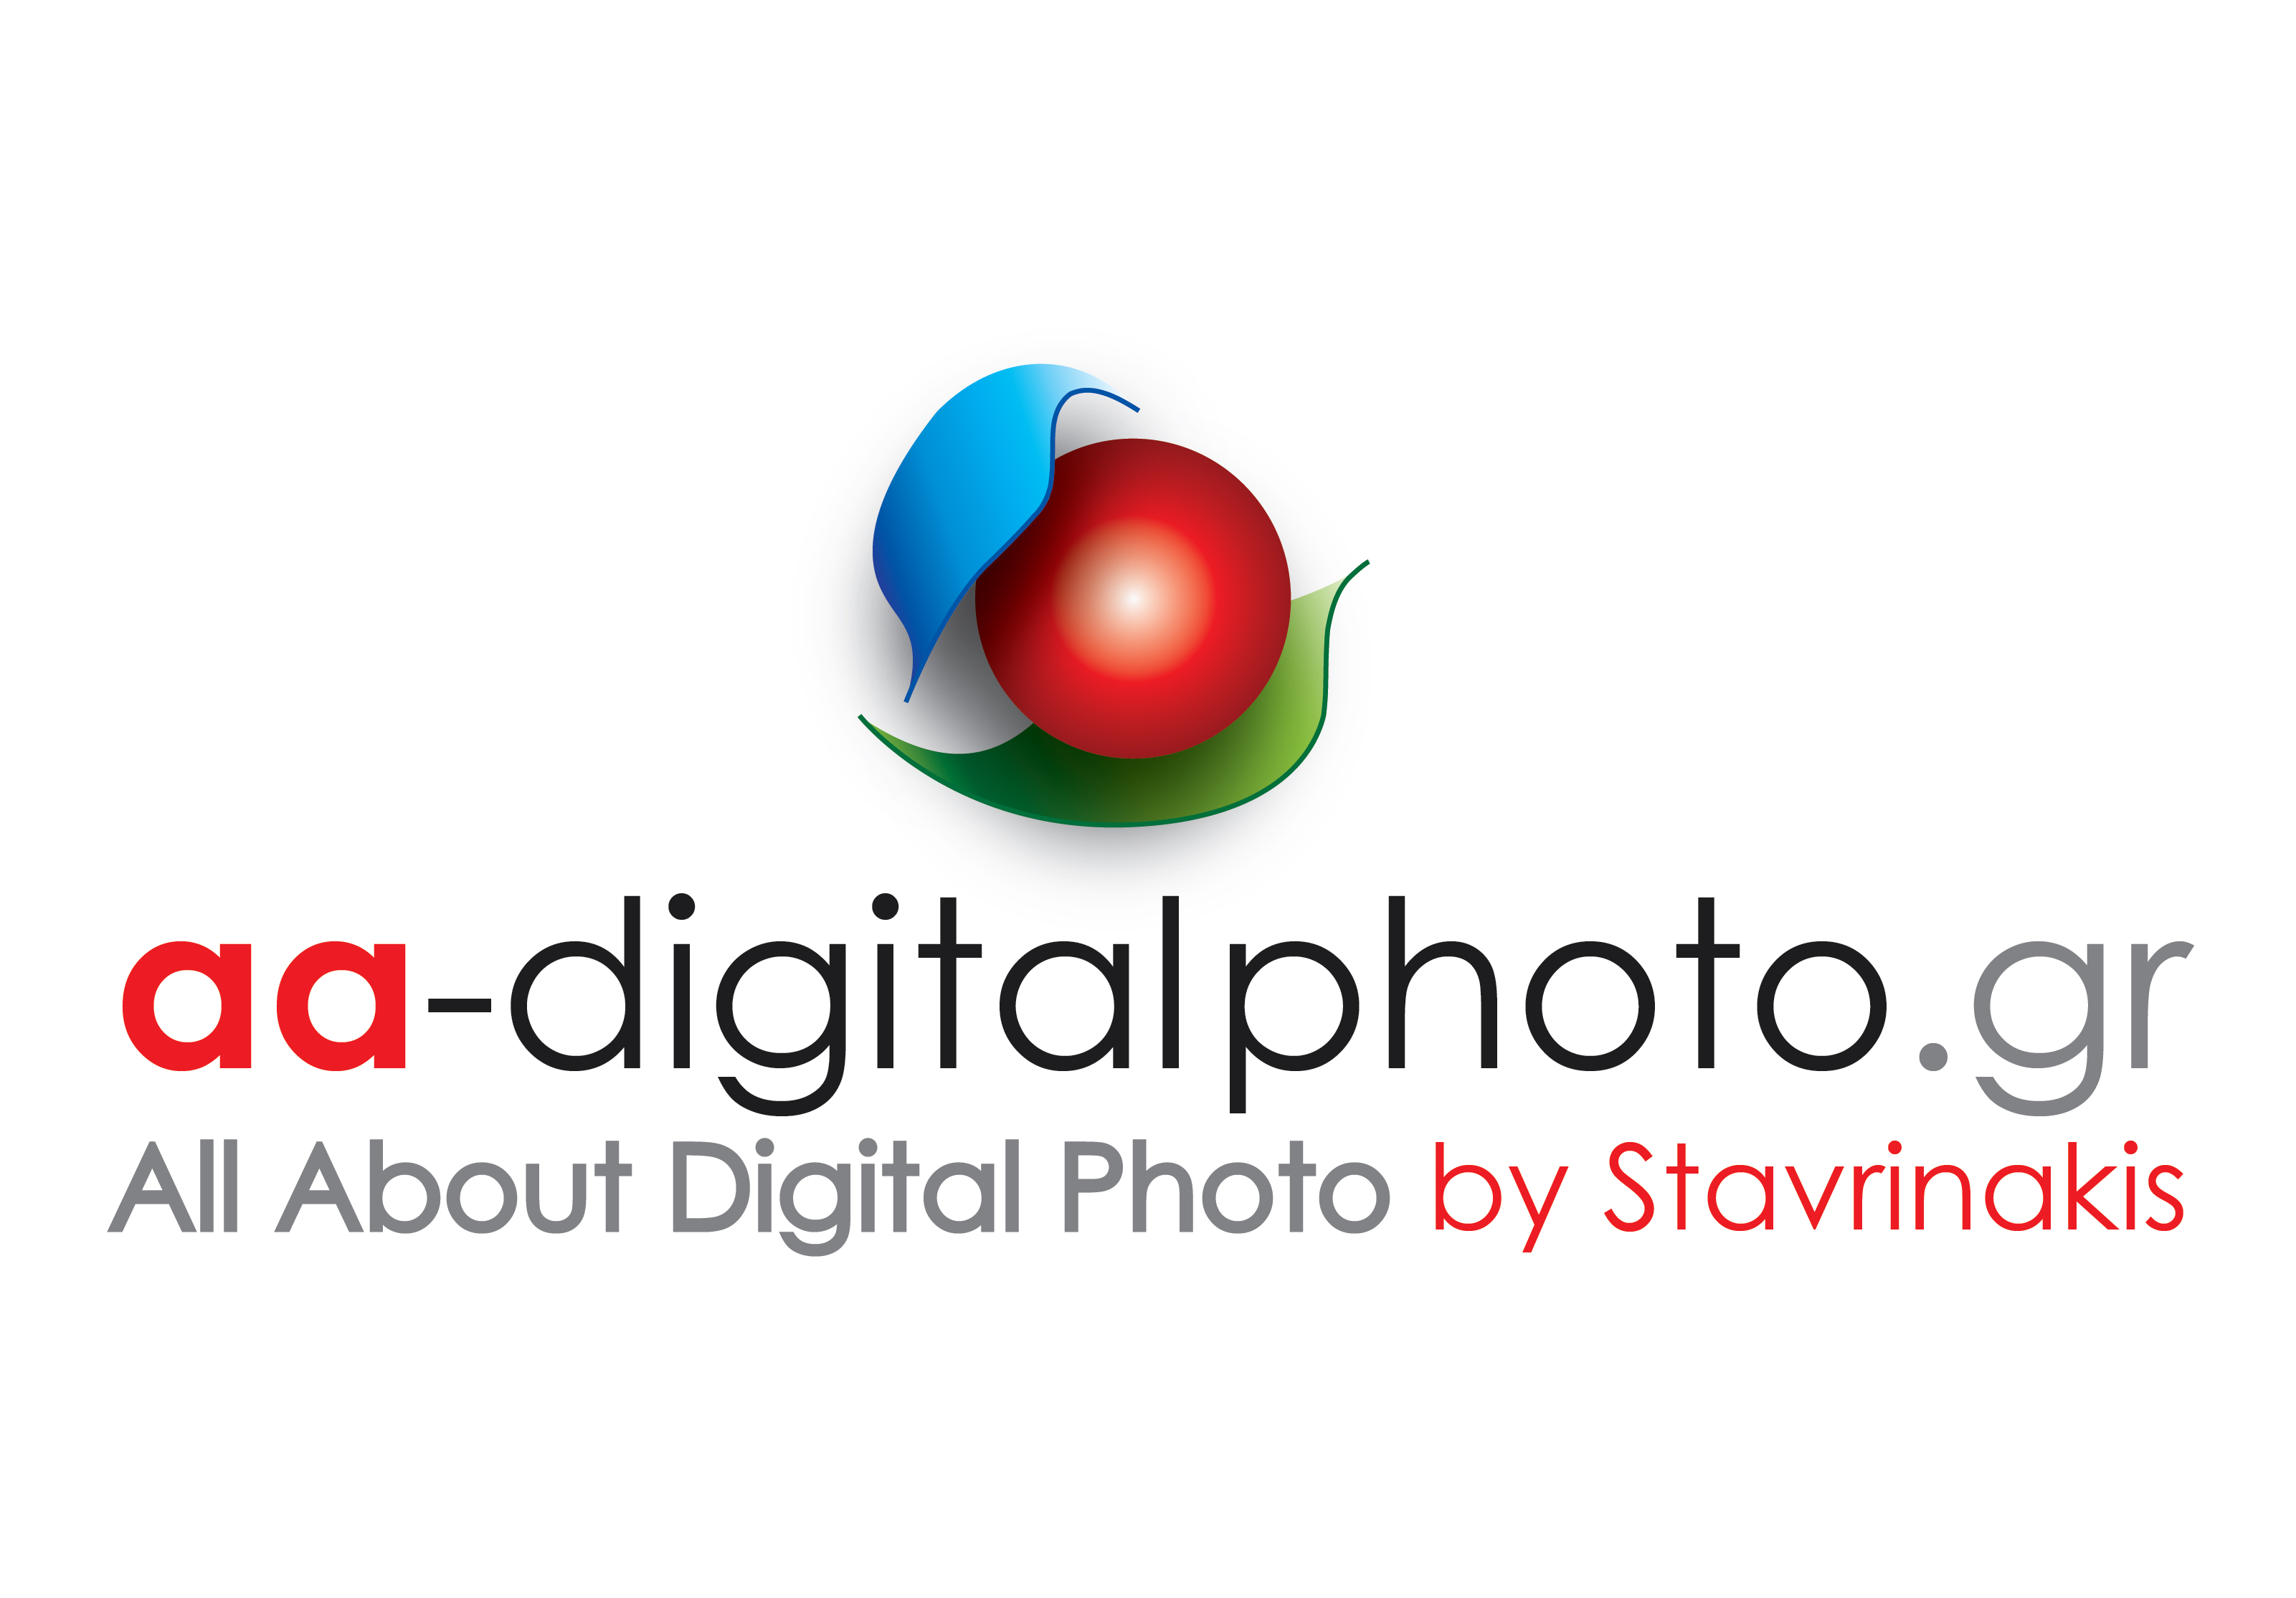 logo-aa-digitalphoto-colors-on-white